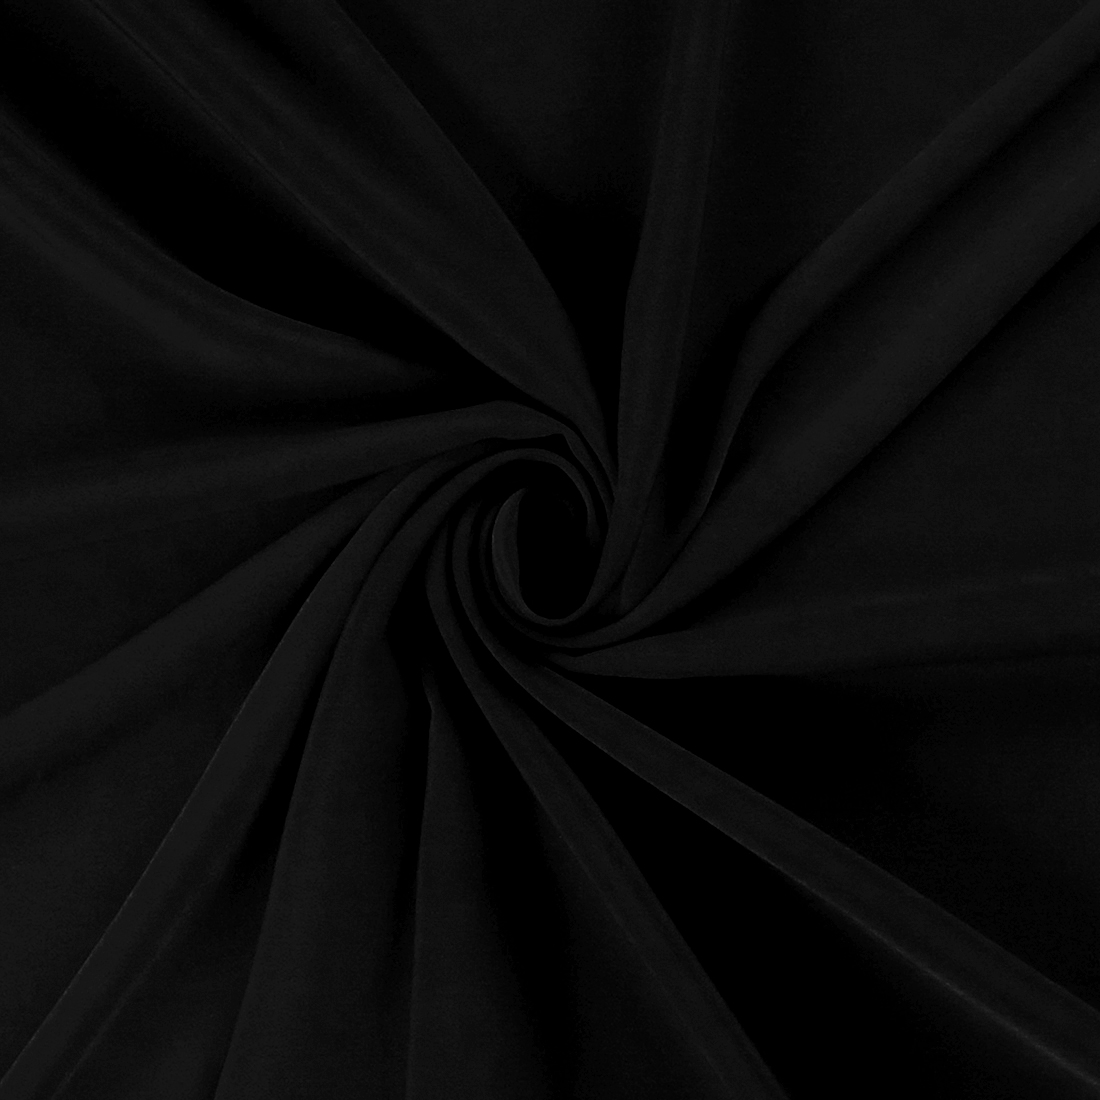 Luxury Crepe Black Dress Fabric